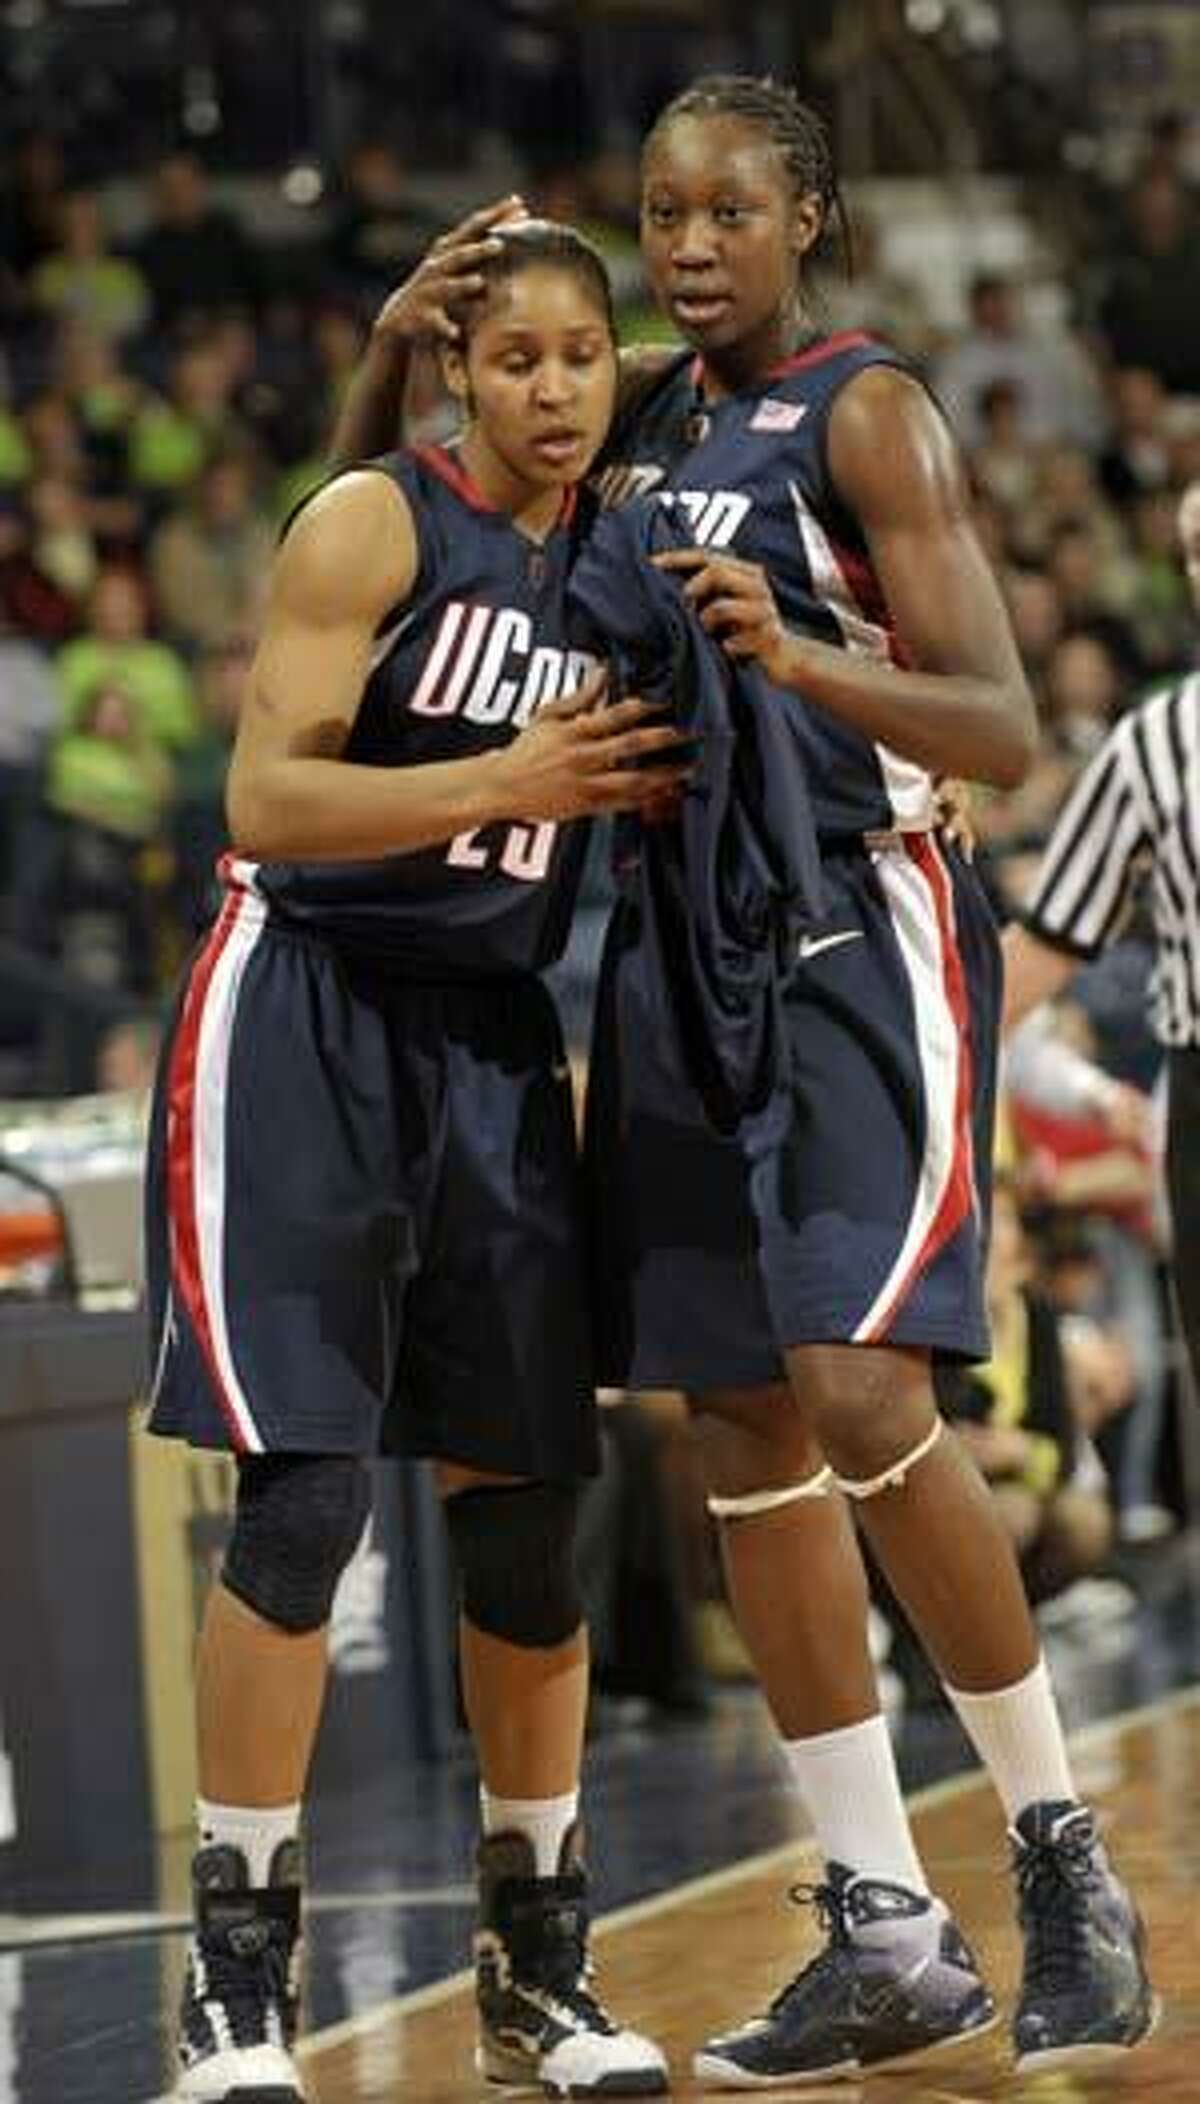 Connecticut center Tina Charles, right, pats her teammate forward Maya Moore on the head as they leave the court late in the second half of an NCAA college basketball game with Notre Dame Monday March 1, 2010, in South Bend, Ind. (AP Photo/Joe Raymond)